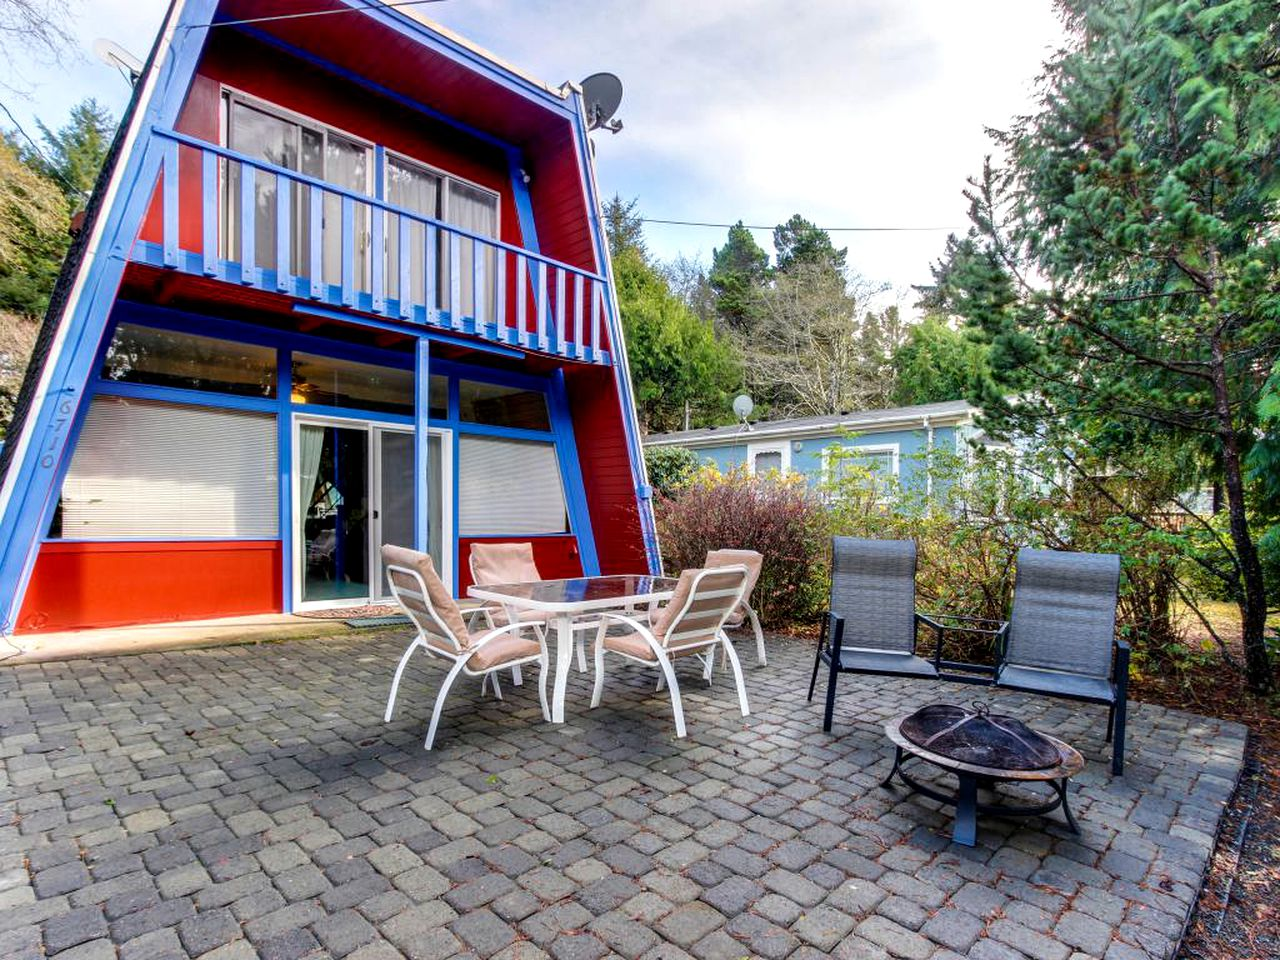 Vacation Rentals (Gleneden Beach, Oregon, United States)